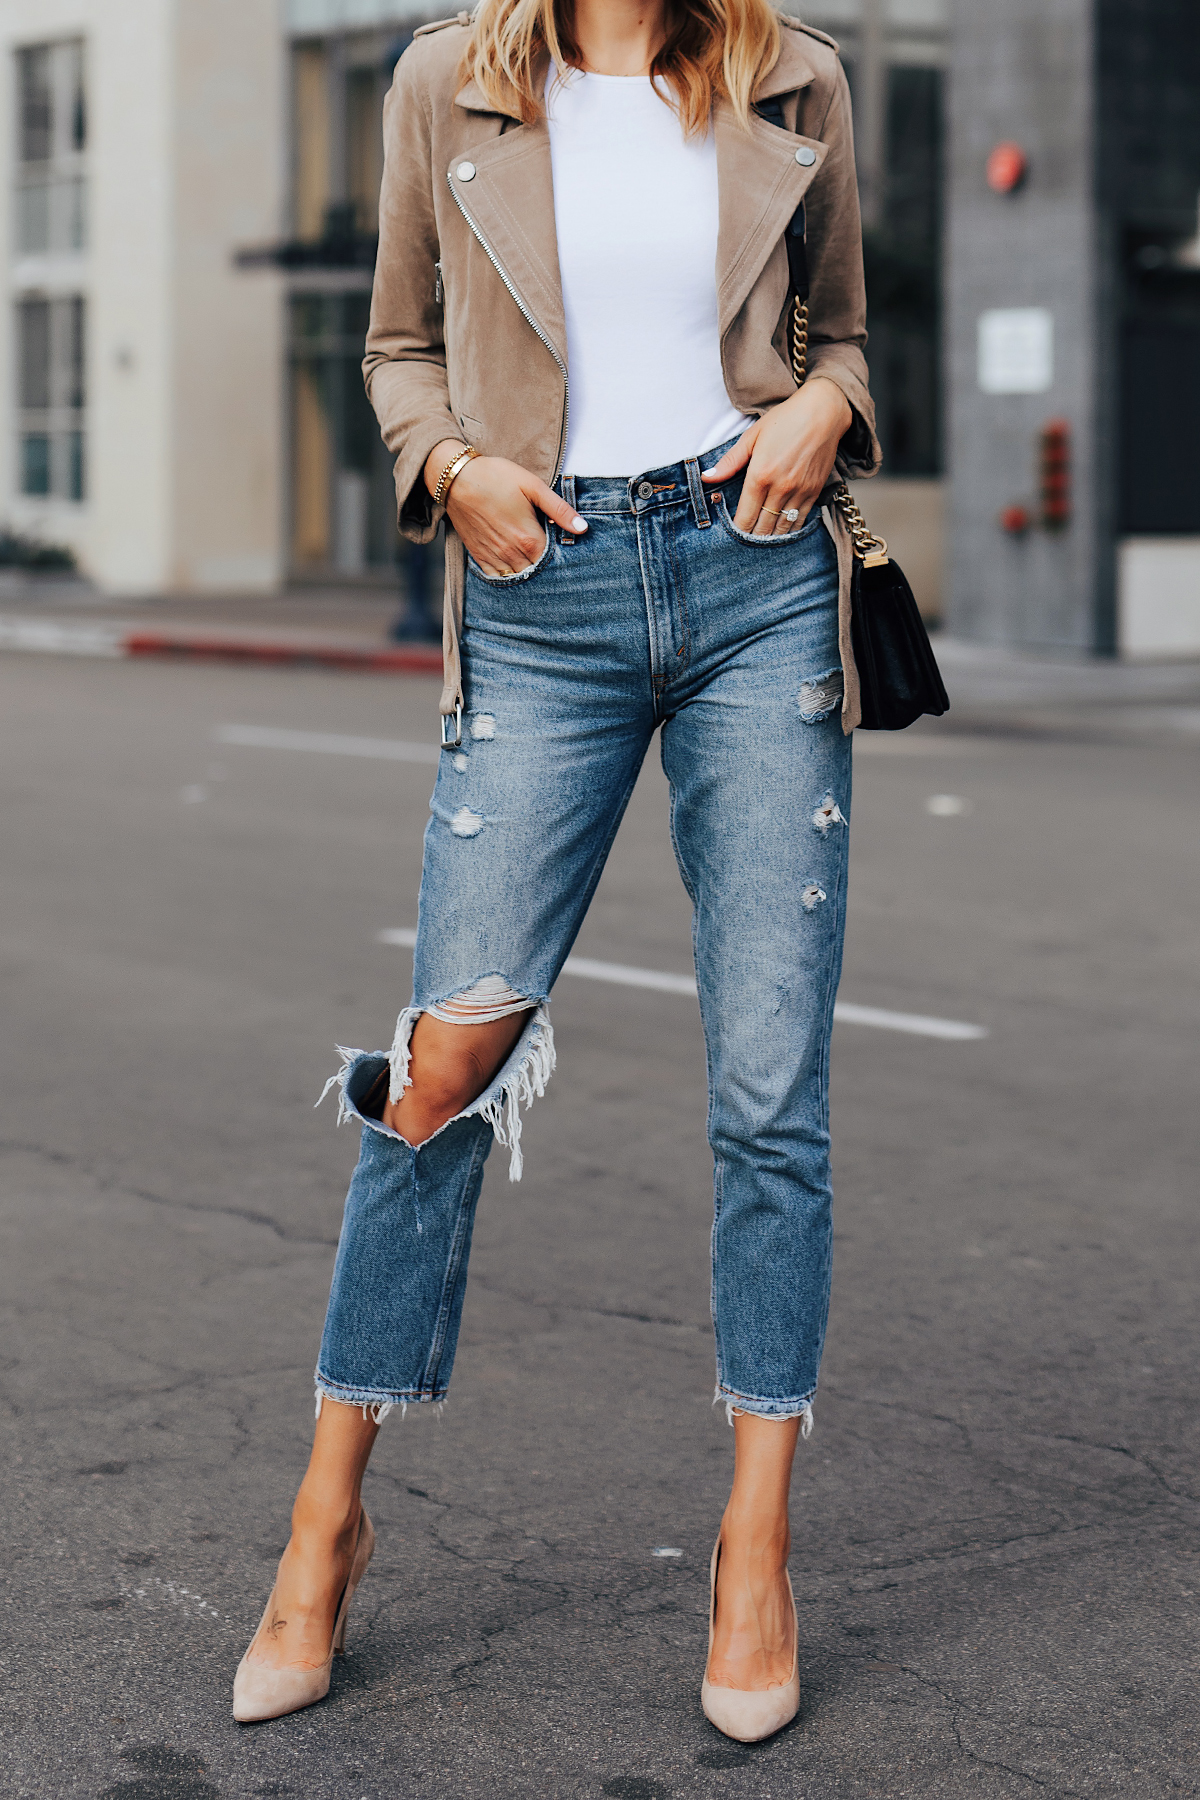 Fashion Jackson Wearing Blanknyc Suede Moto Jacket San Stoner White Bodysuit Ripped Jeans Nude Pumps